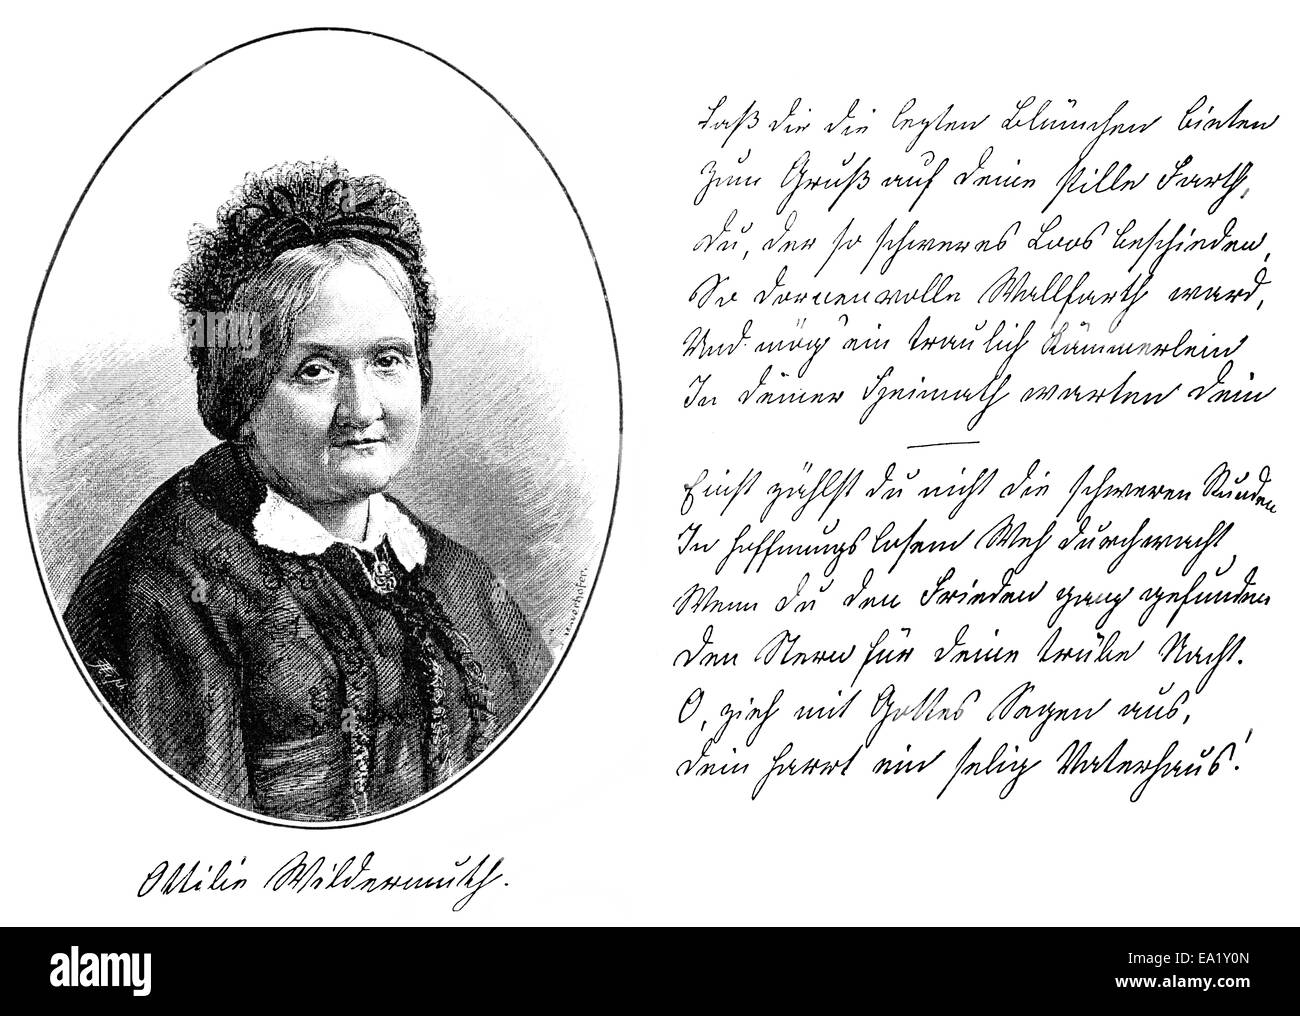 historical manuscript and portrait of Ottilie Wildermuth, 1817-1877, German writer and youth book author, Historische - Stock Image